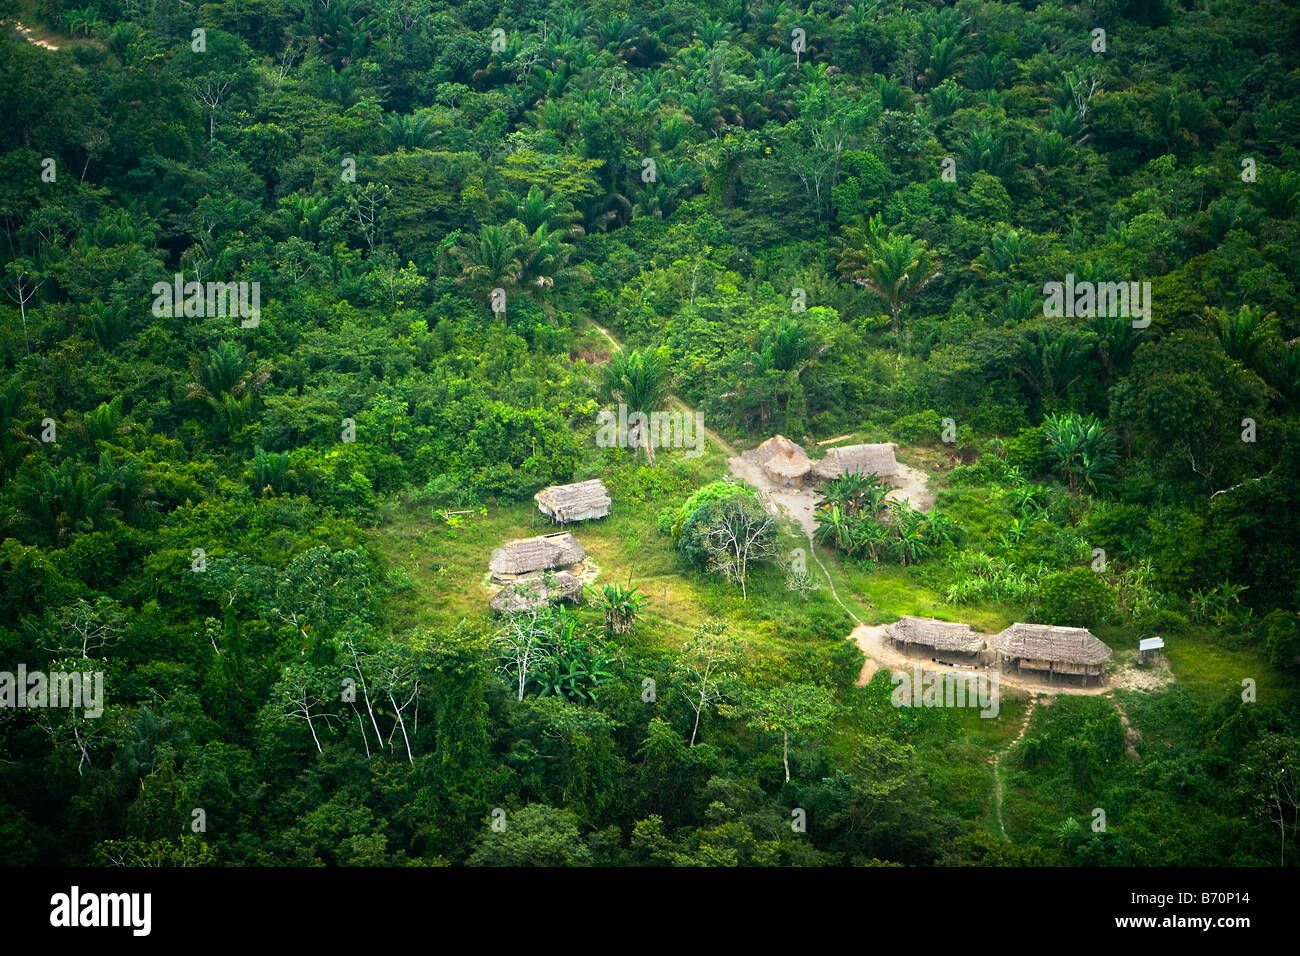 Suriname, Kwamalasamutu, home of indigenous Indians. Aerial view of some huts outside the village. - Stock Image